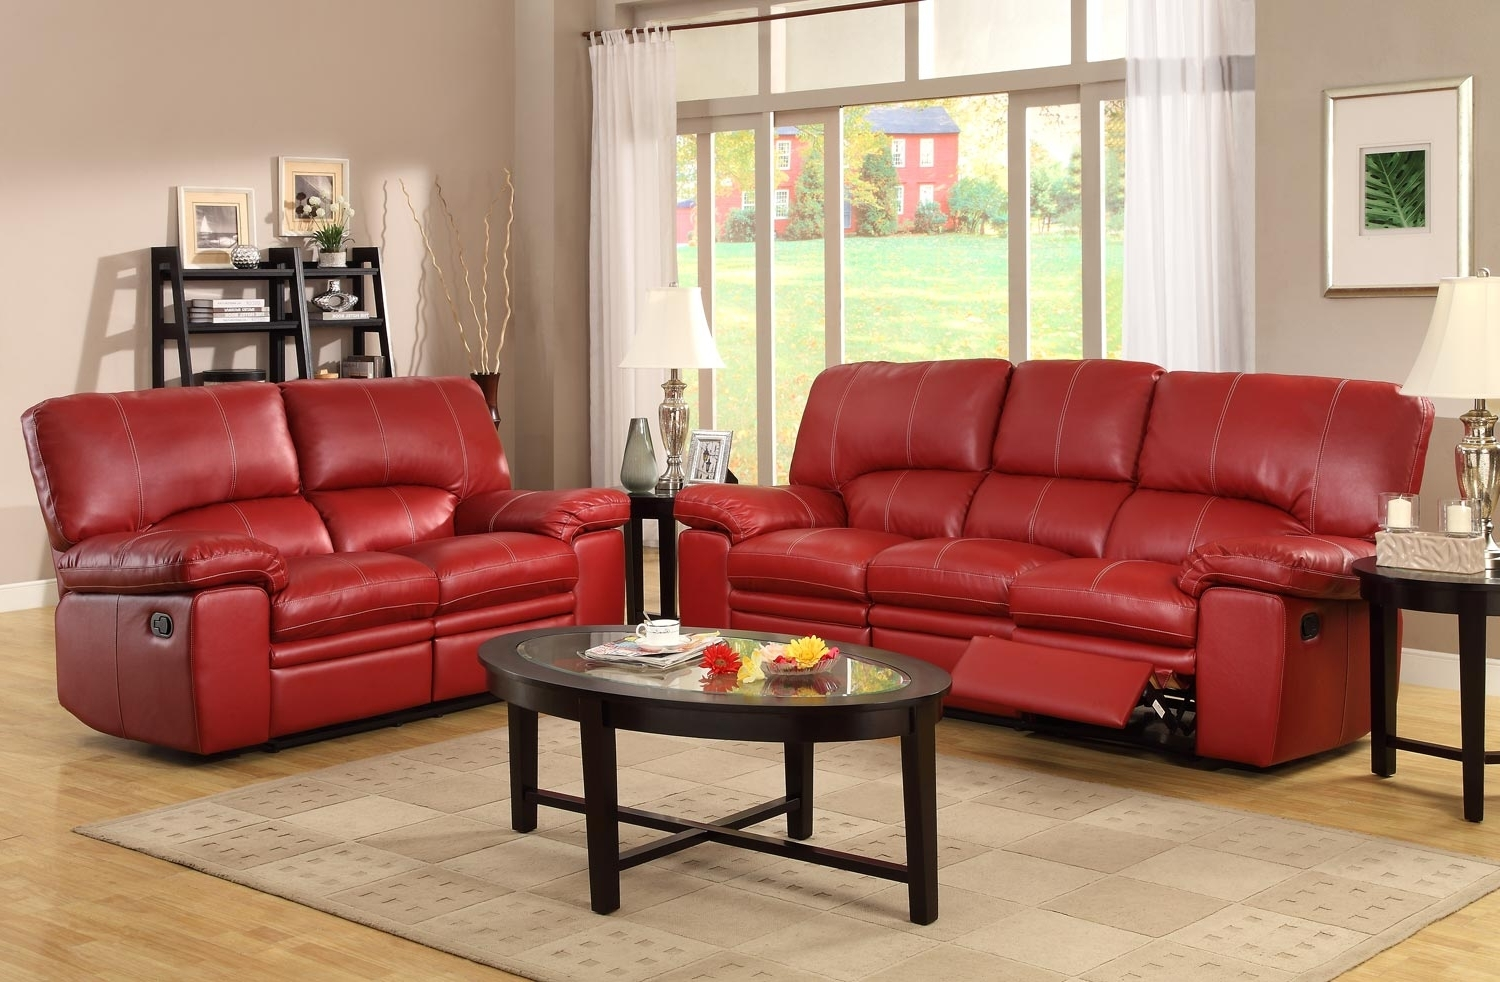 Red Leather Reclining Sofas And Loveseats Inside 2017 Simple Red Leather Tufted Backrest Loveseat With Shelter Armrest (View 10 of 15)